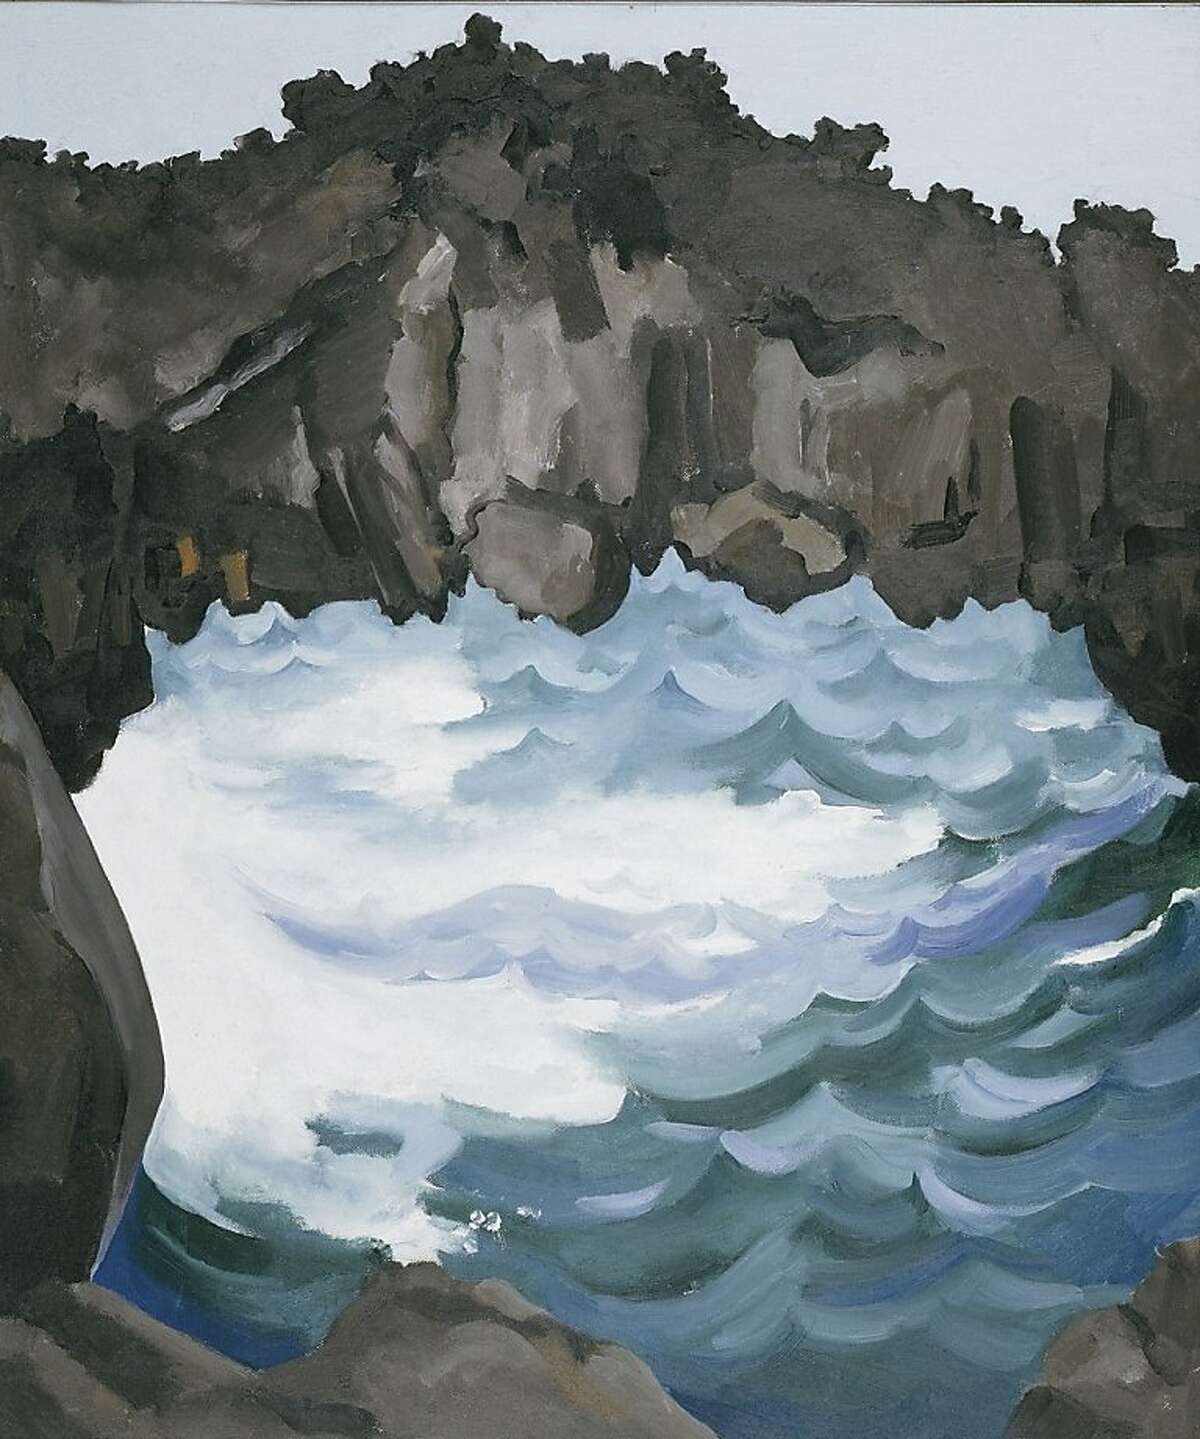 """Georgia O'Keeffe's """"Black Lava Bridge, Hana Coast, No. 1"""" is a 24x20-inch oil on canvas that came out the artist's trip to Maui and three other Hawaiian islands over nine weeks in 1939."""